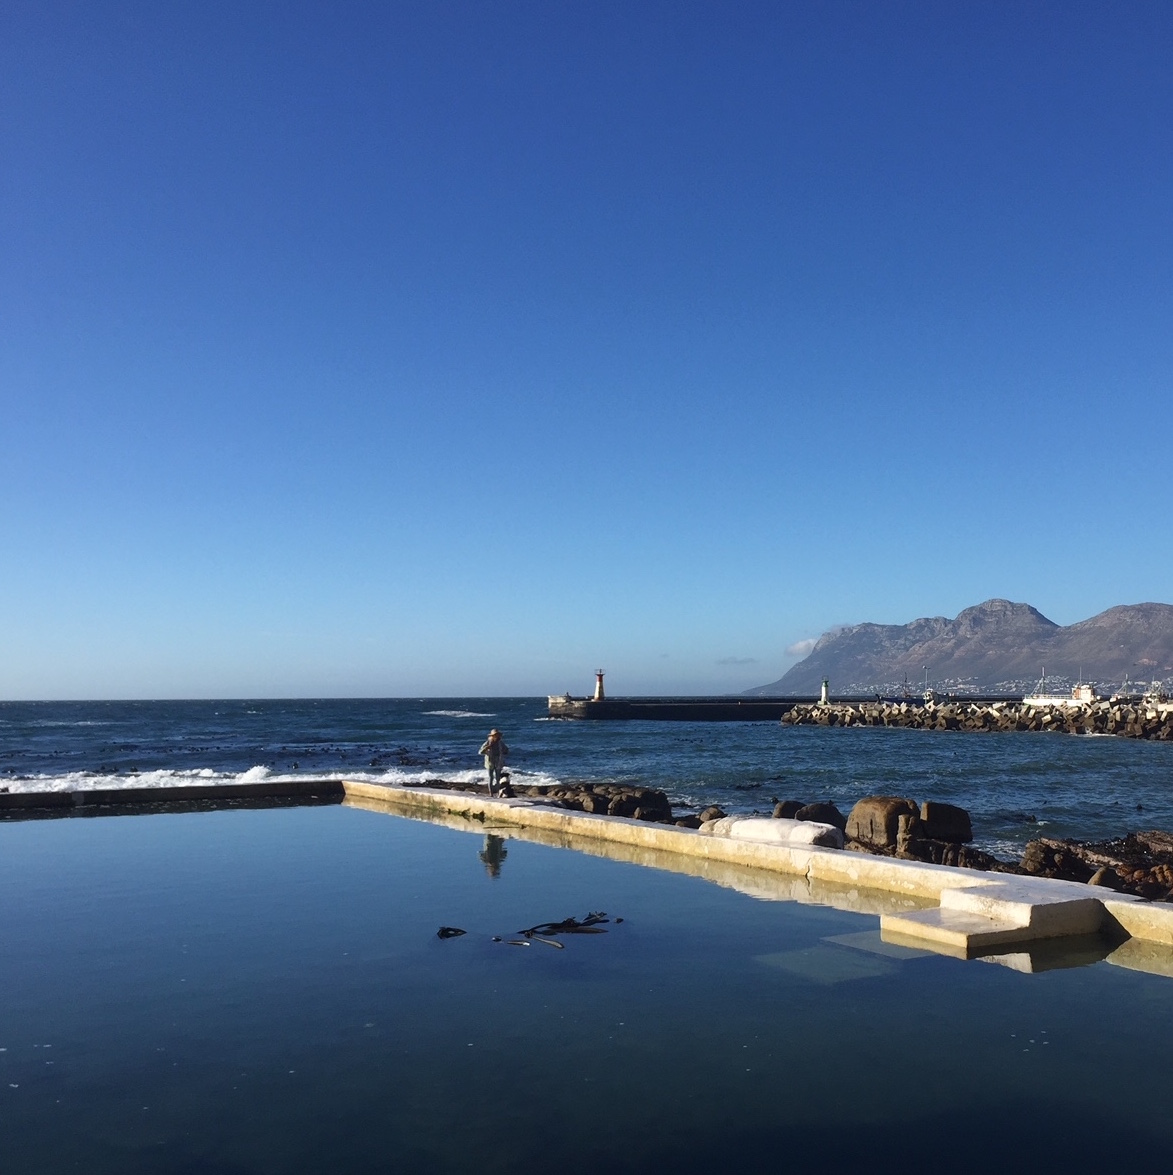 Kalk Bay Tidal Pools 1 and 2